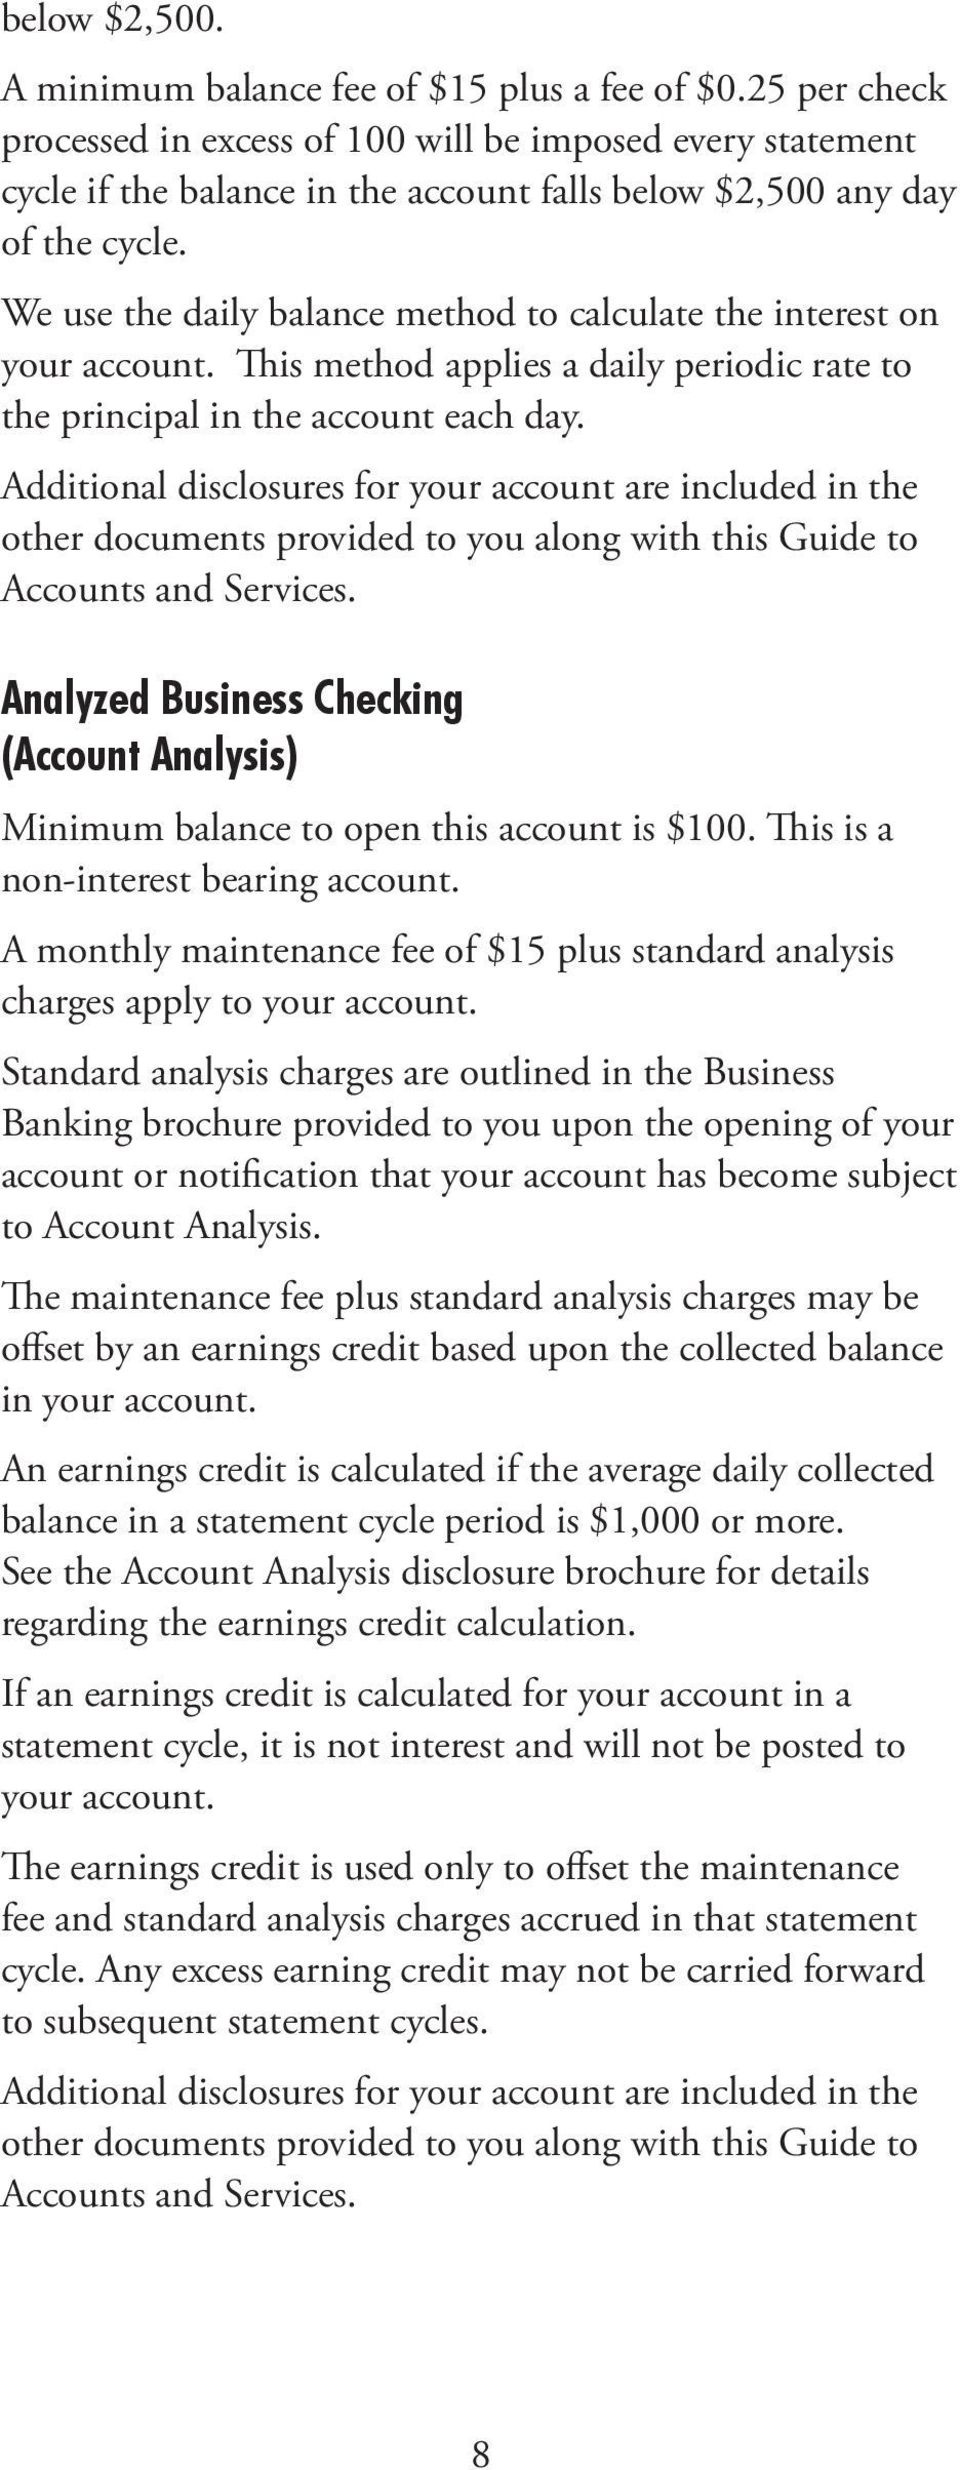 We use the daily balance method to calculate the interest on your account. This method applies a daily periodic rate to the principal in the account each day.